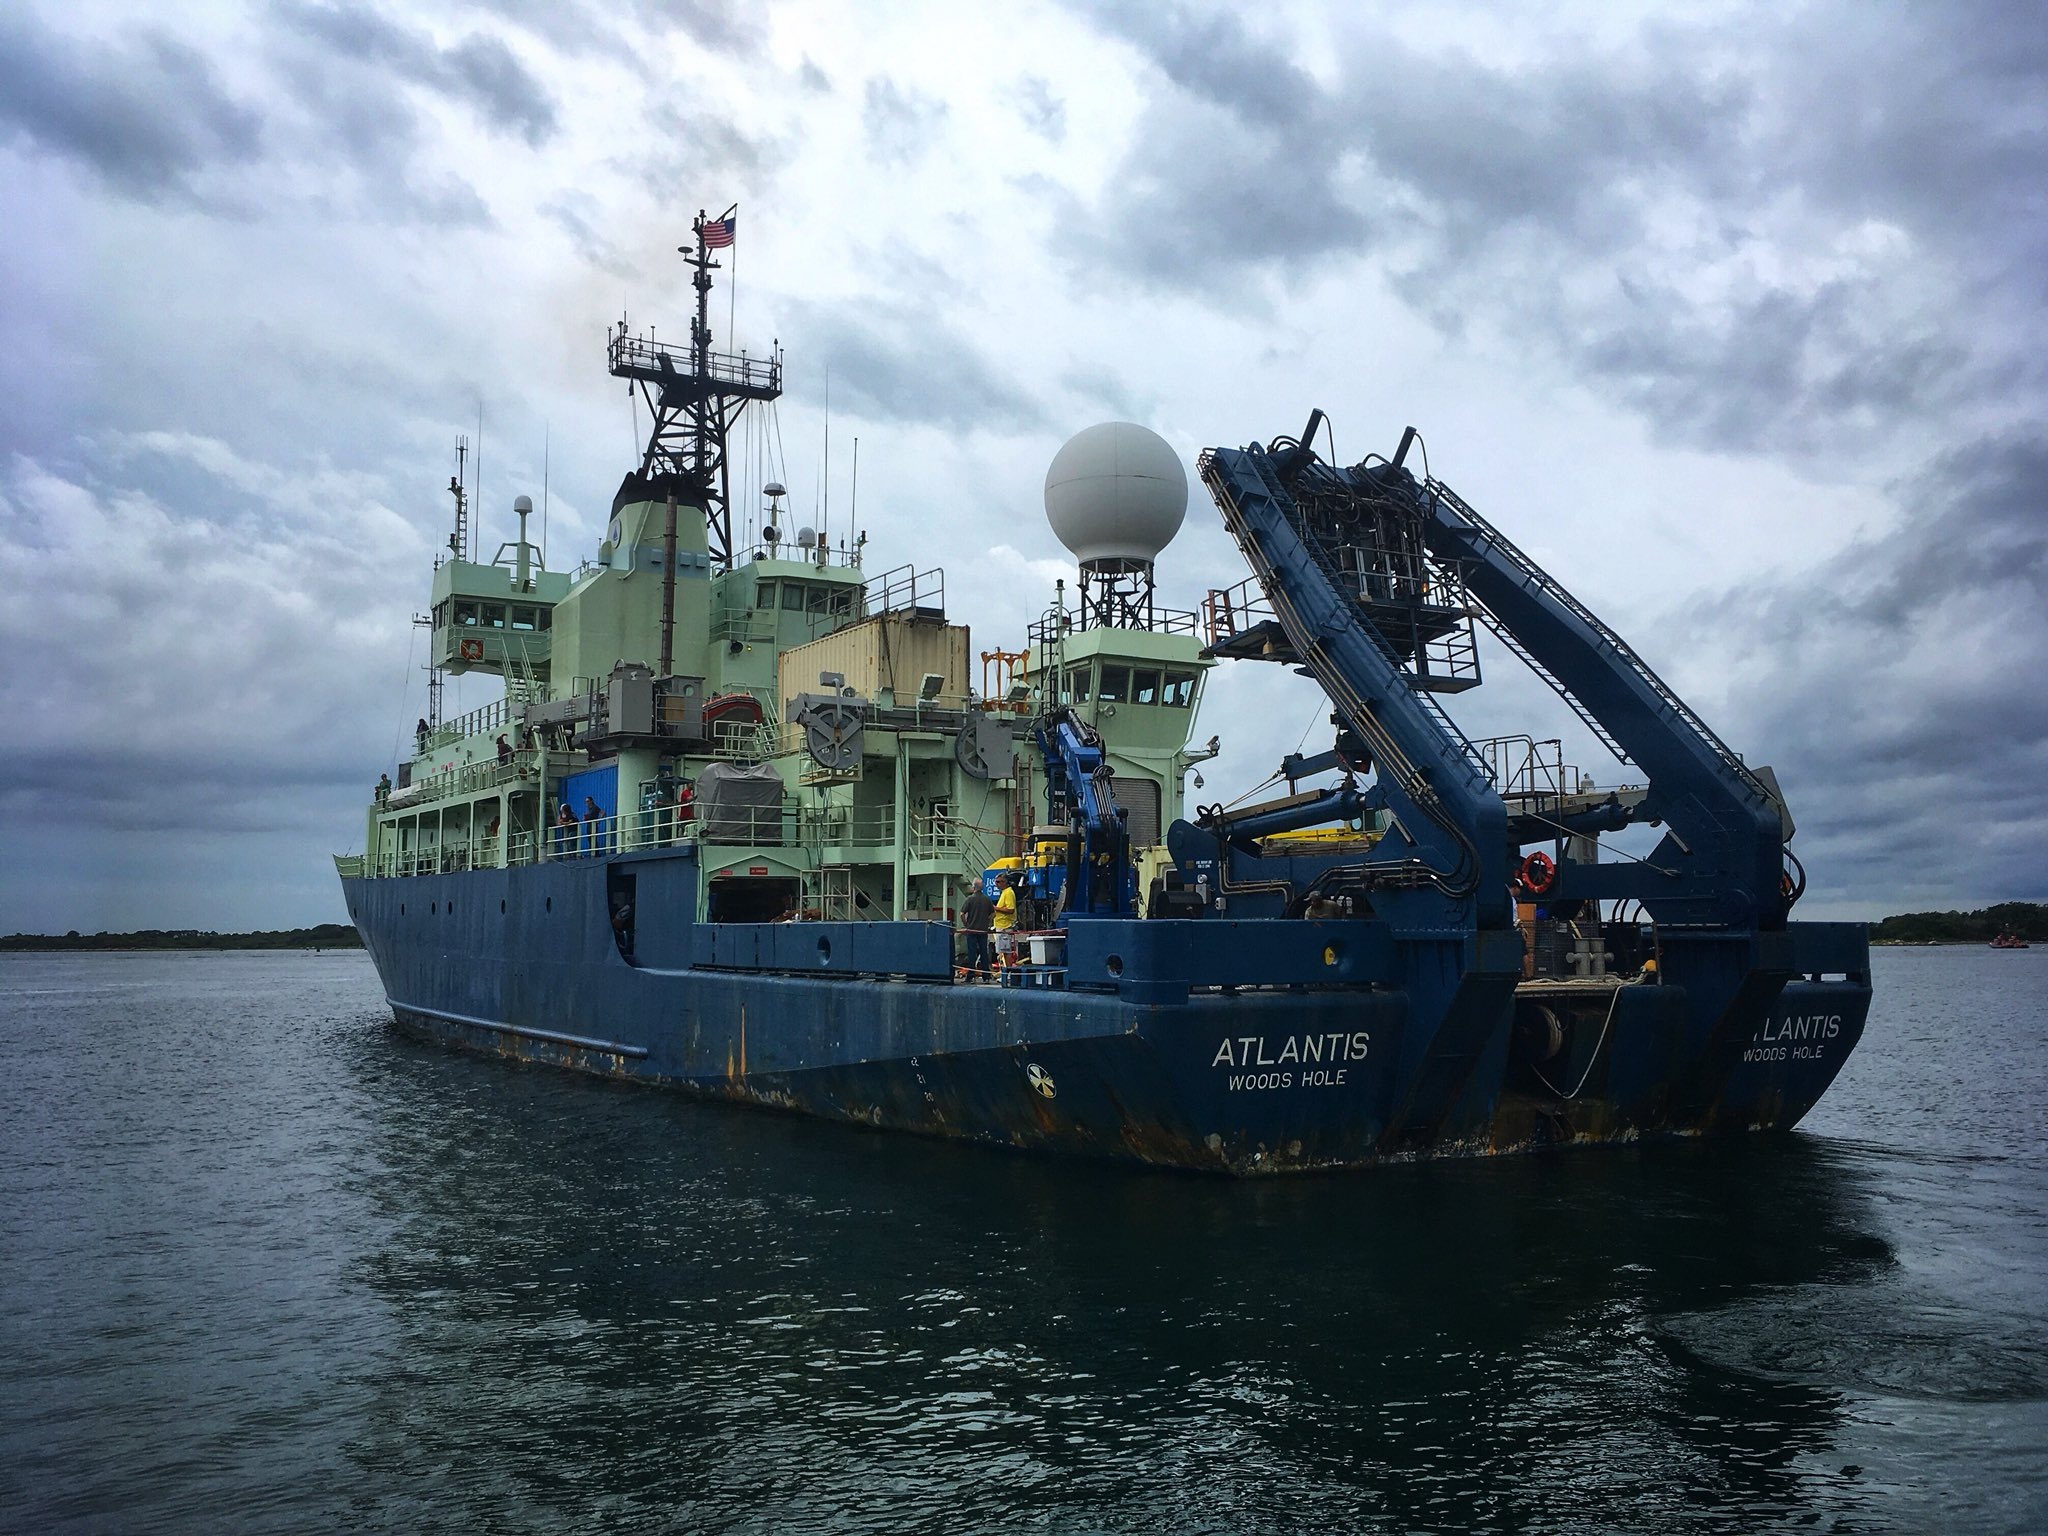 The research vessel  Atlantis  leaving Woods Hole for its month-long expedition to the middle of the Atlantic Ocean.  © Rika Anderson (used with permission)